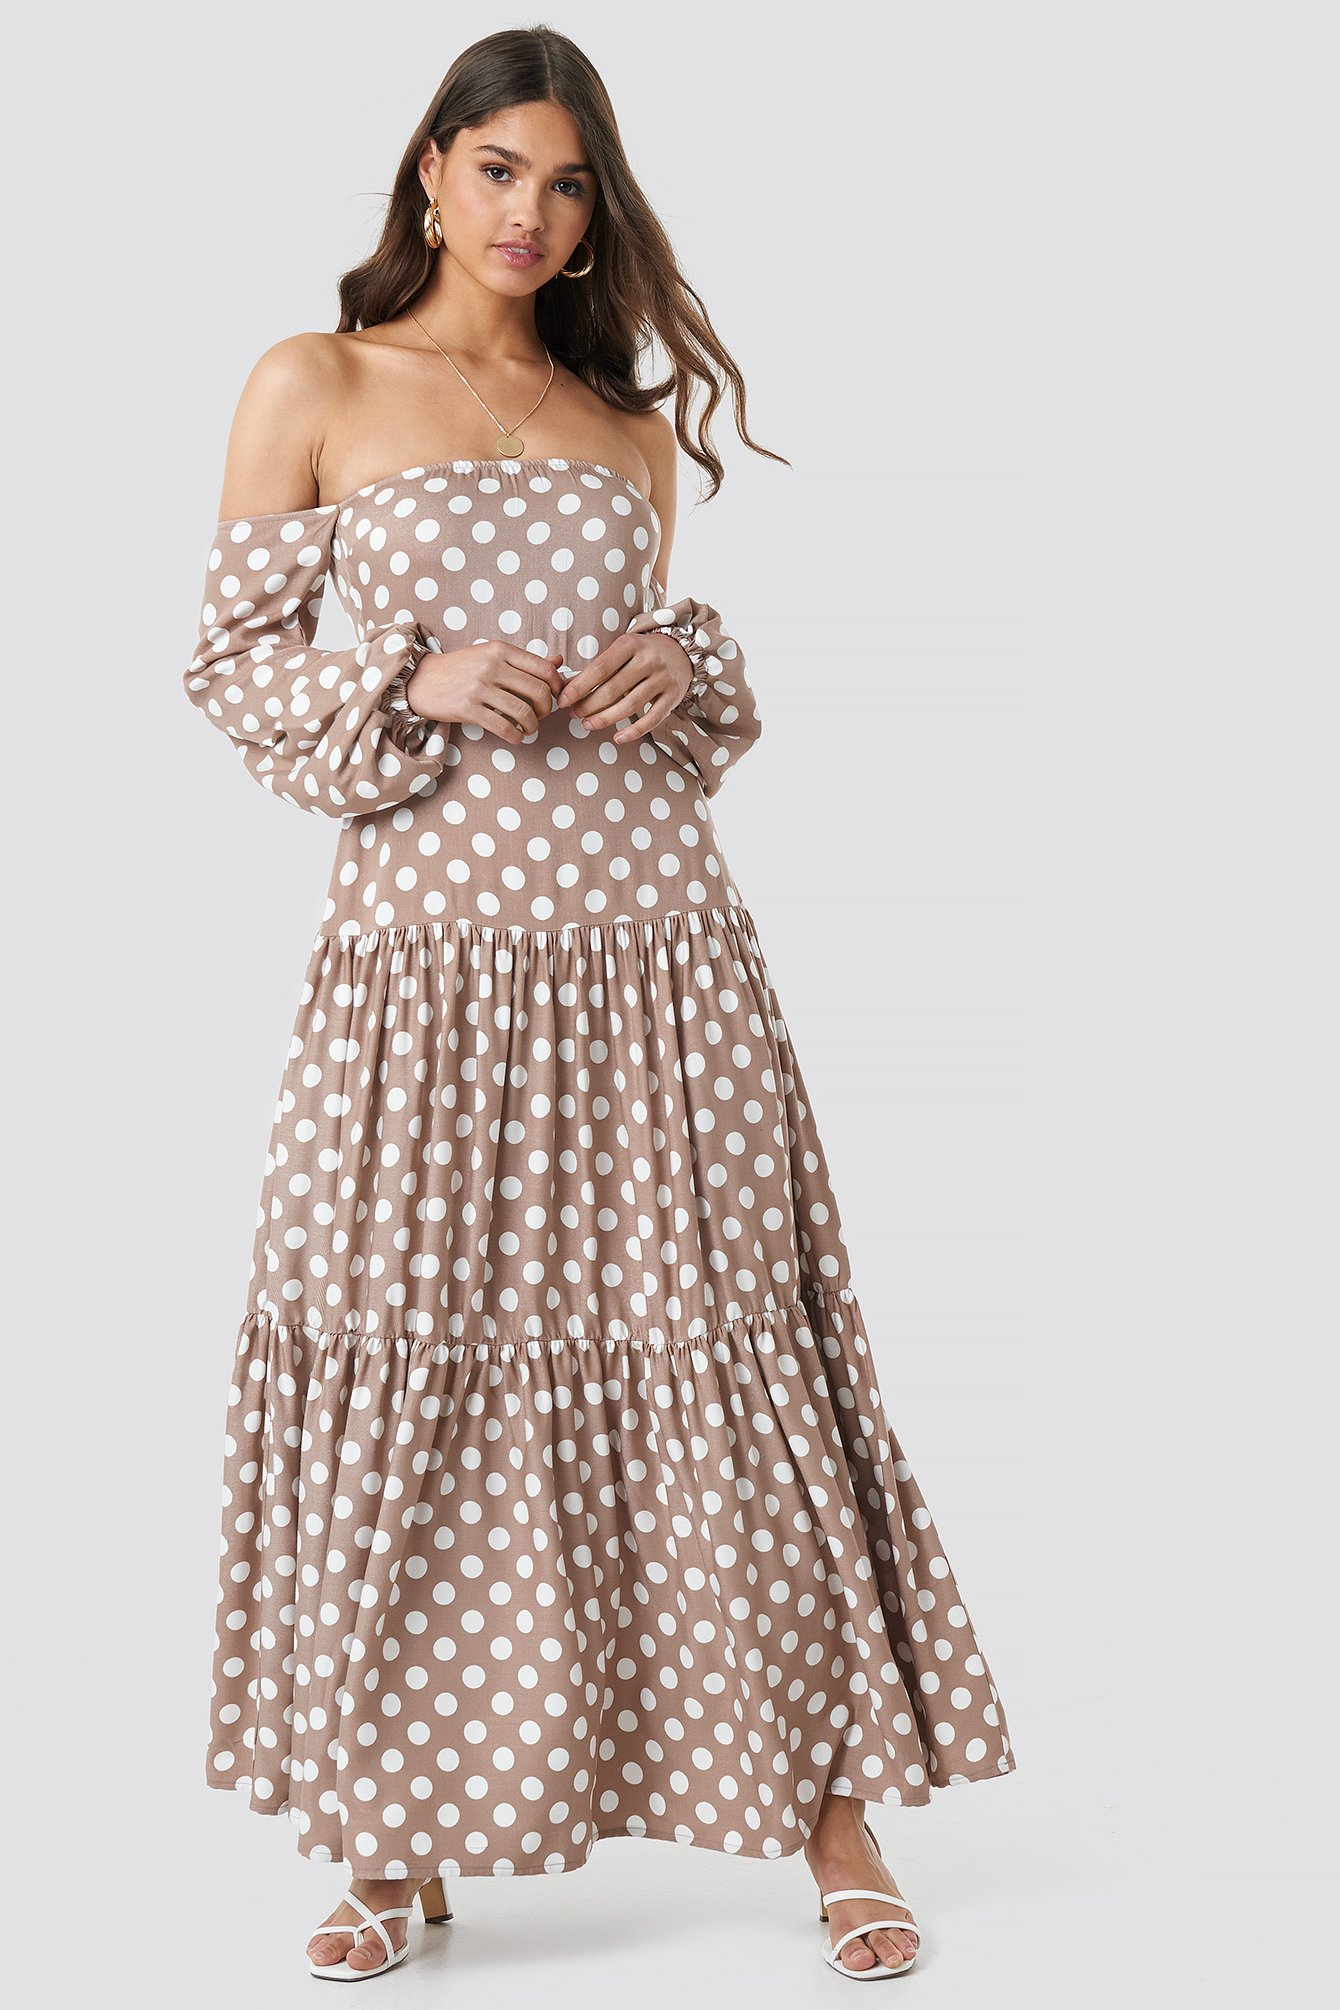 Beige/White Polka Dot Maxi Dress